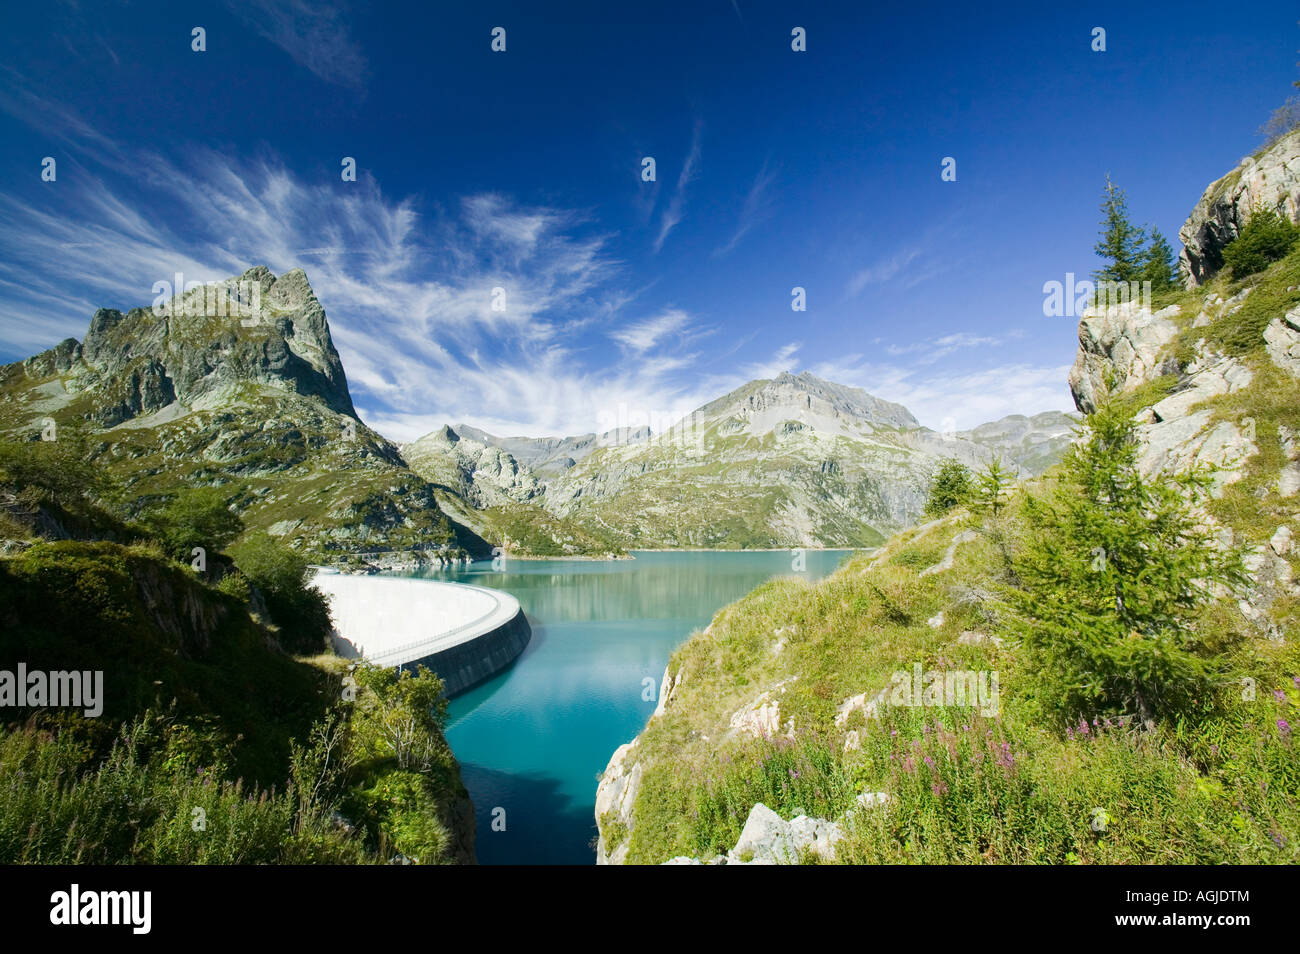 Lake Emerson on the Swiss French border dammed to generate hydro